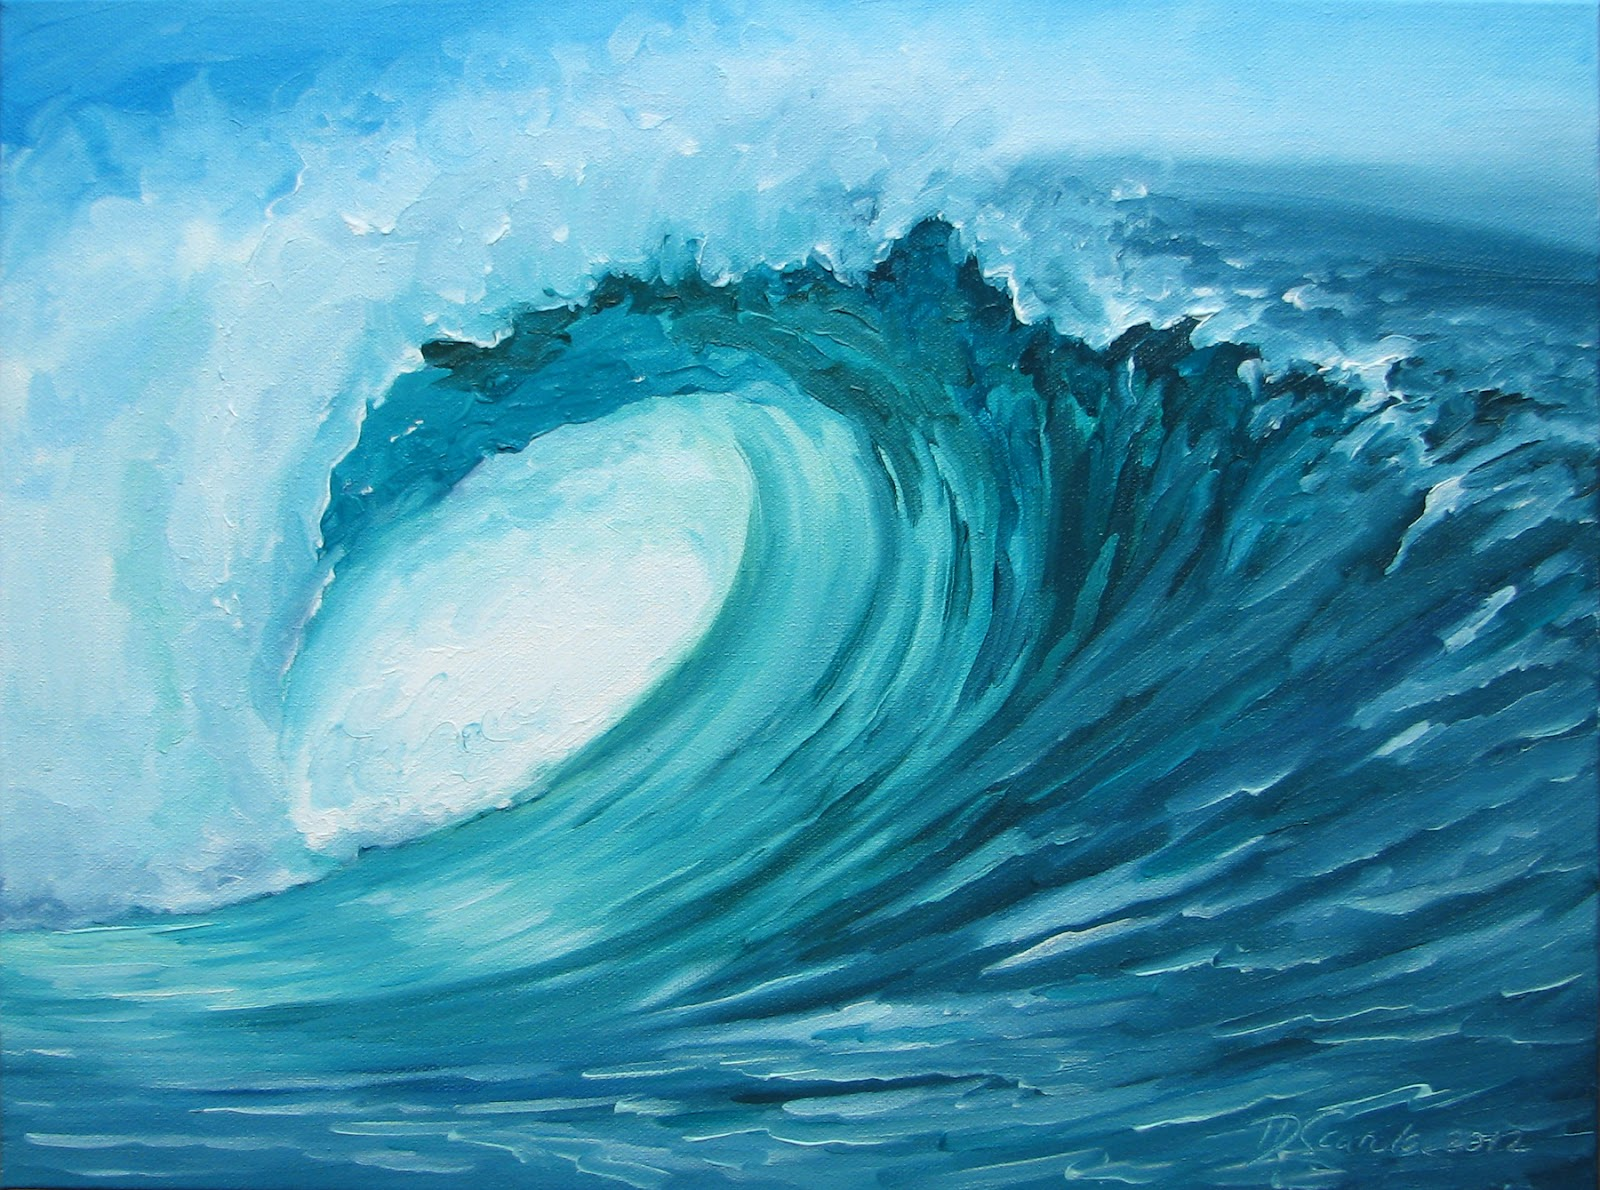 ocean waves 1342 design principles for ocean vehicles reading # period waves on the order of 12 to 24 hours earthquakes are the major cause of tsunamis.